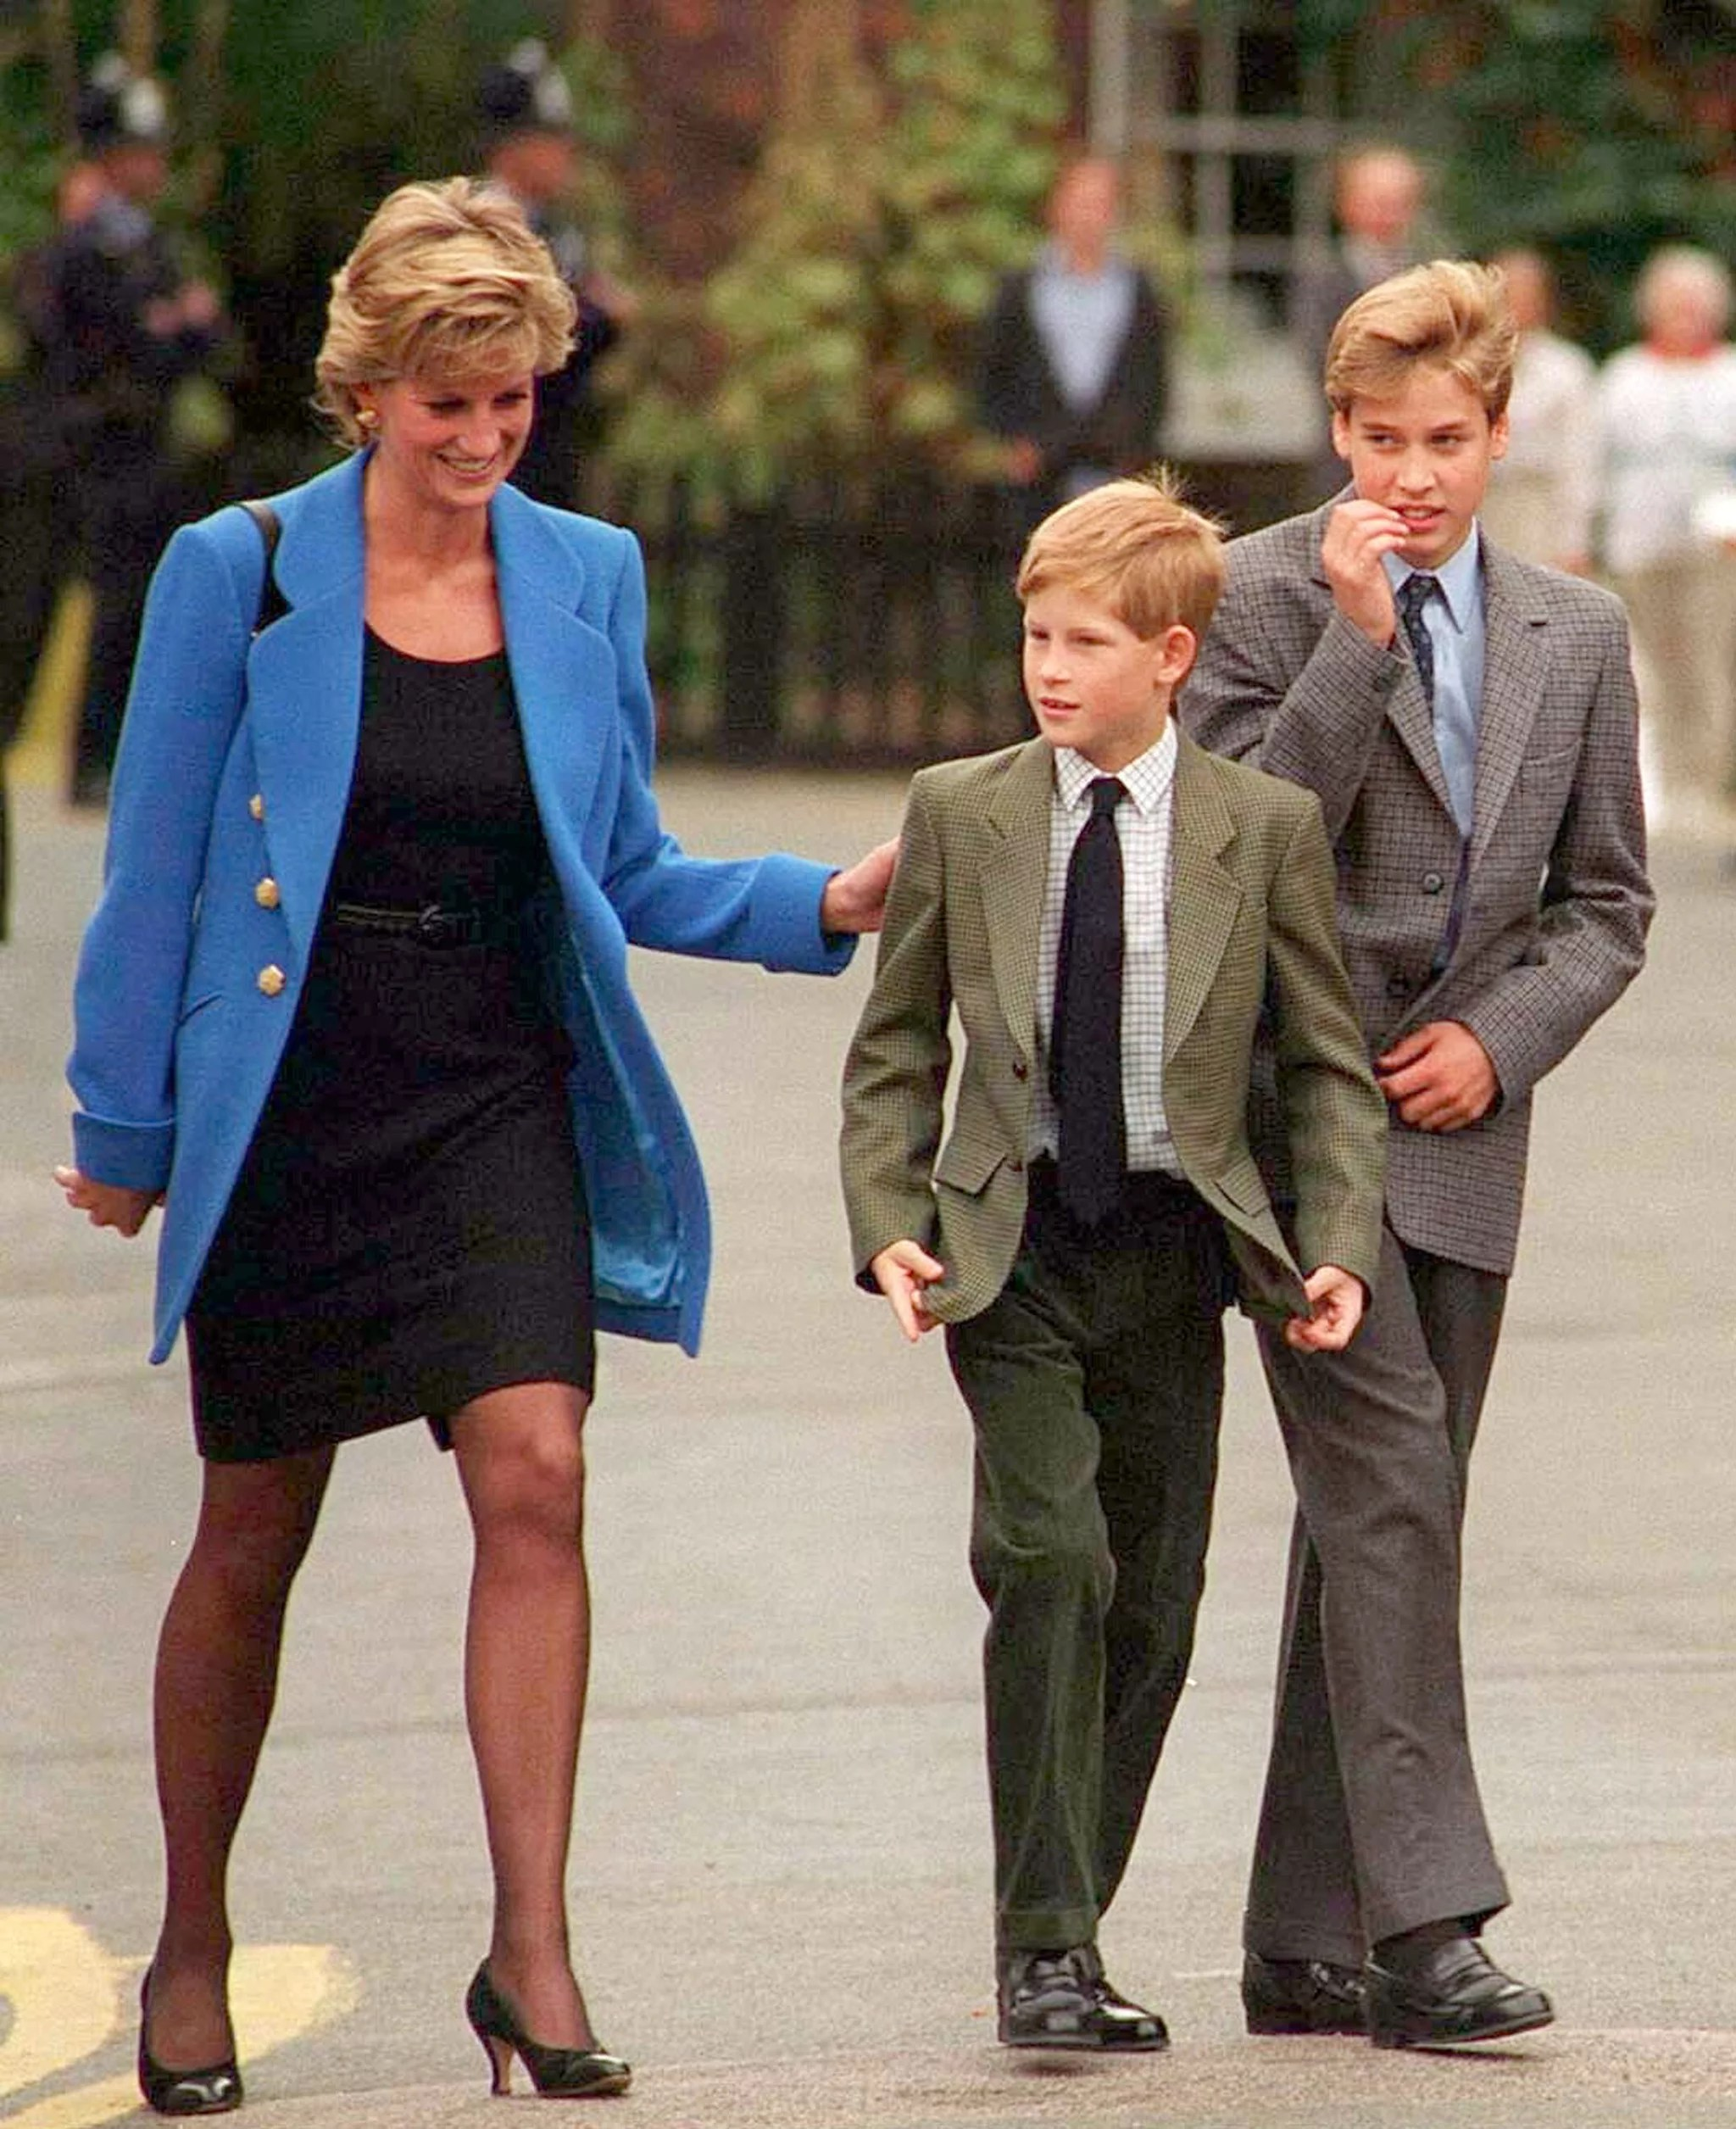 Tremendous Prince William Harry Princess Diana Sons Hvac Harry Prince Harry Quotes About Princess Diana Harry Sons Hours William On His Day At Eton houzz 01 Harry And Sons